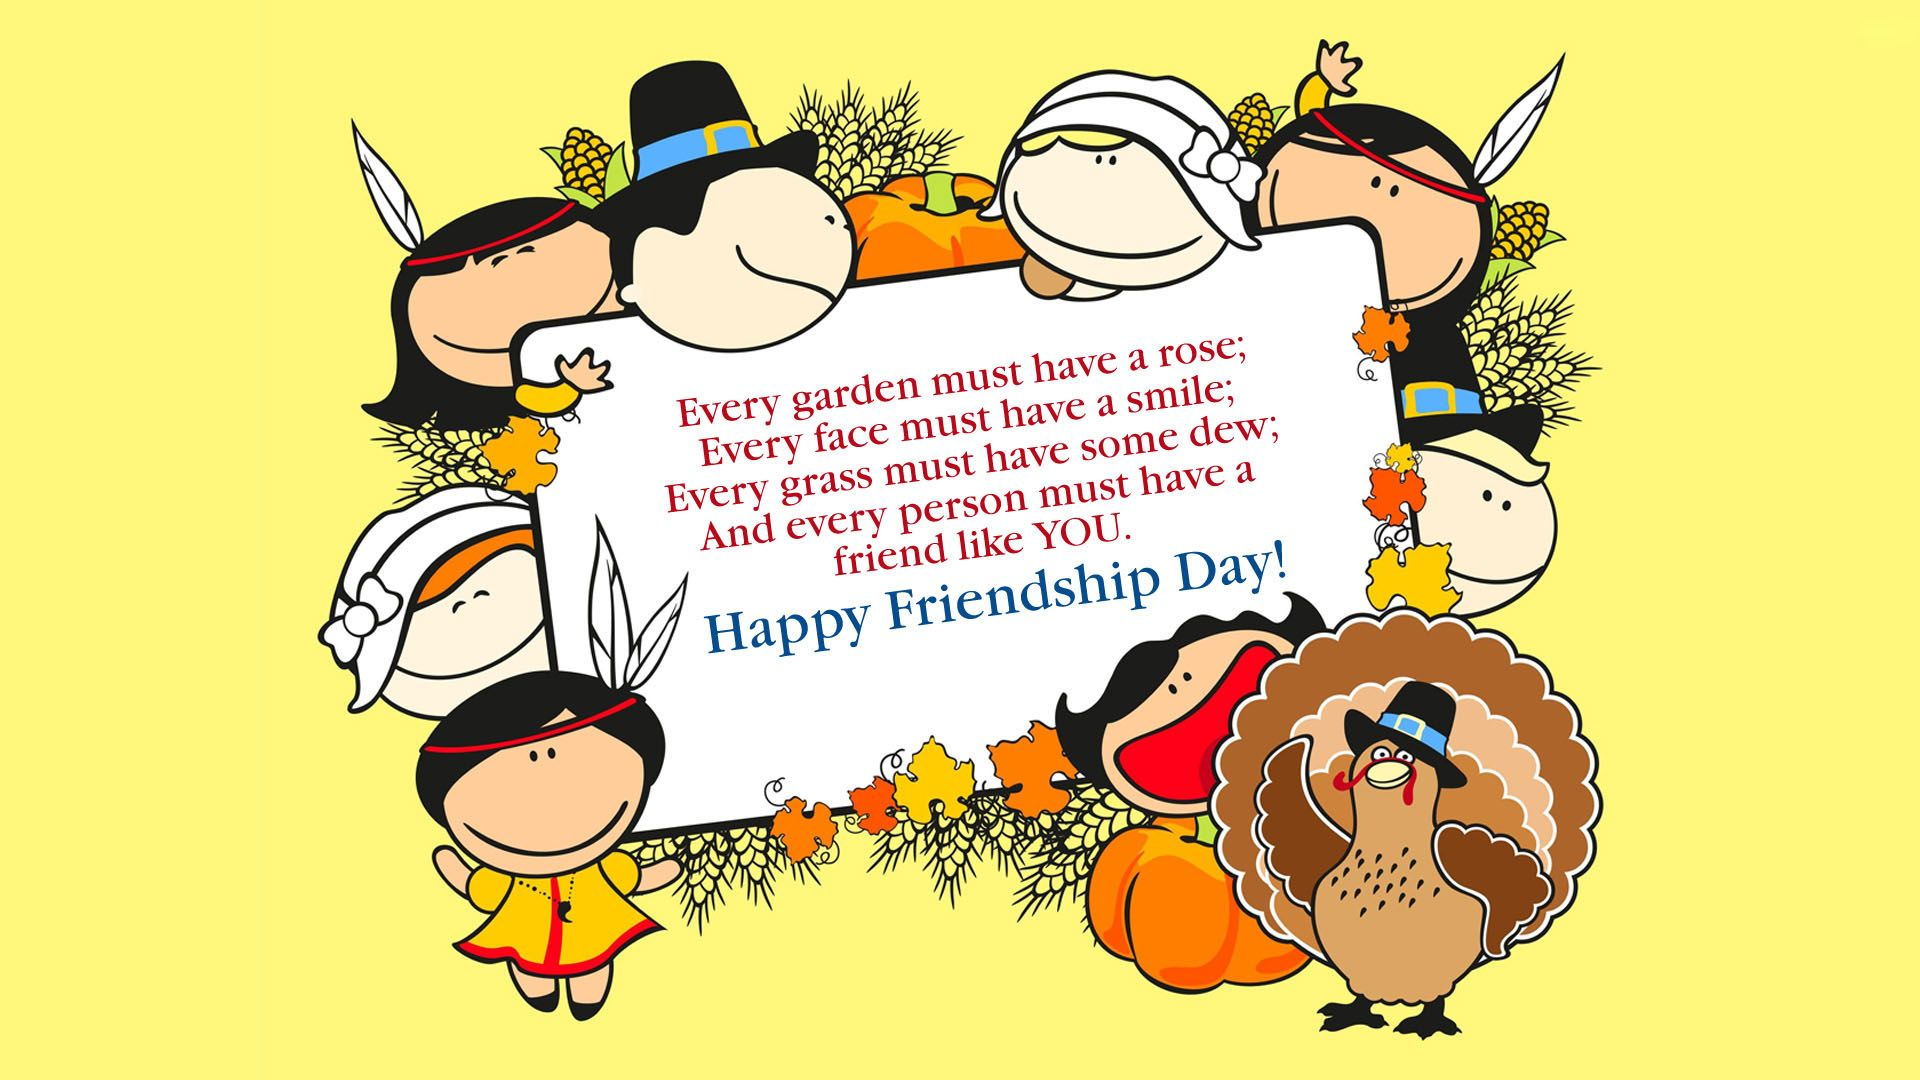 Very Happy Friendship Day Pc Background